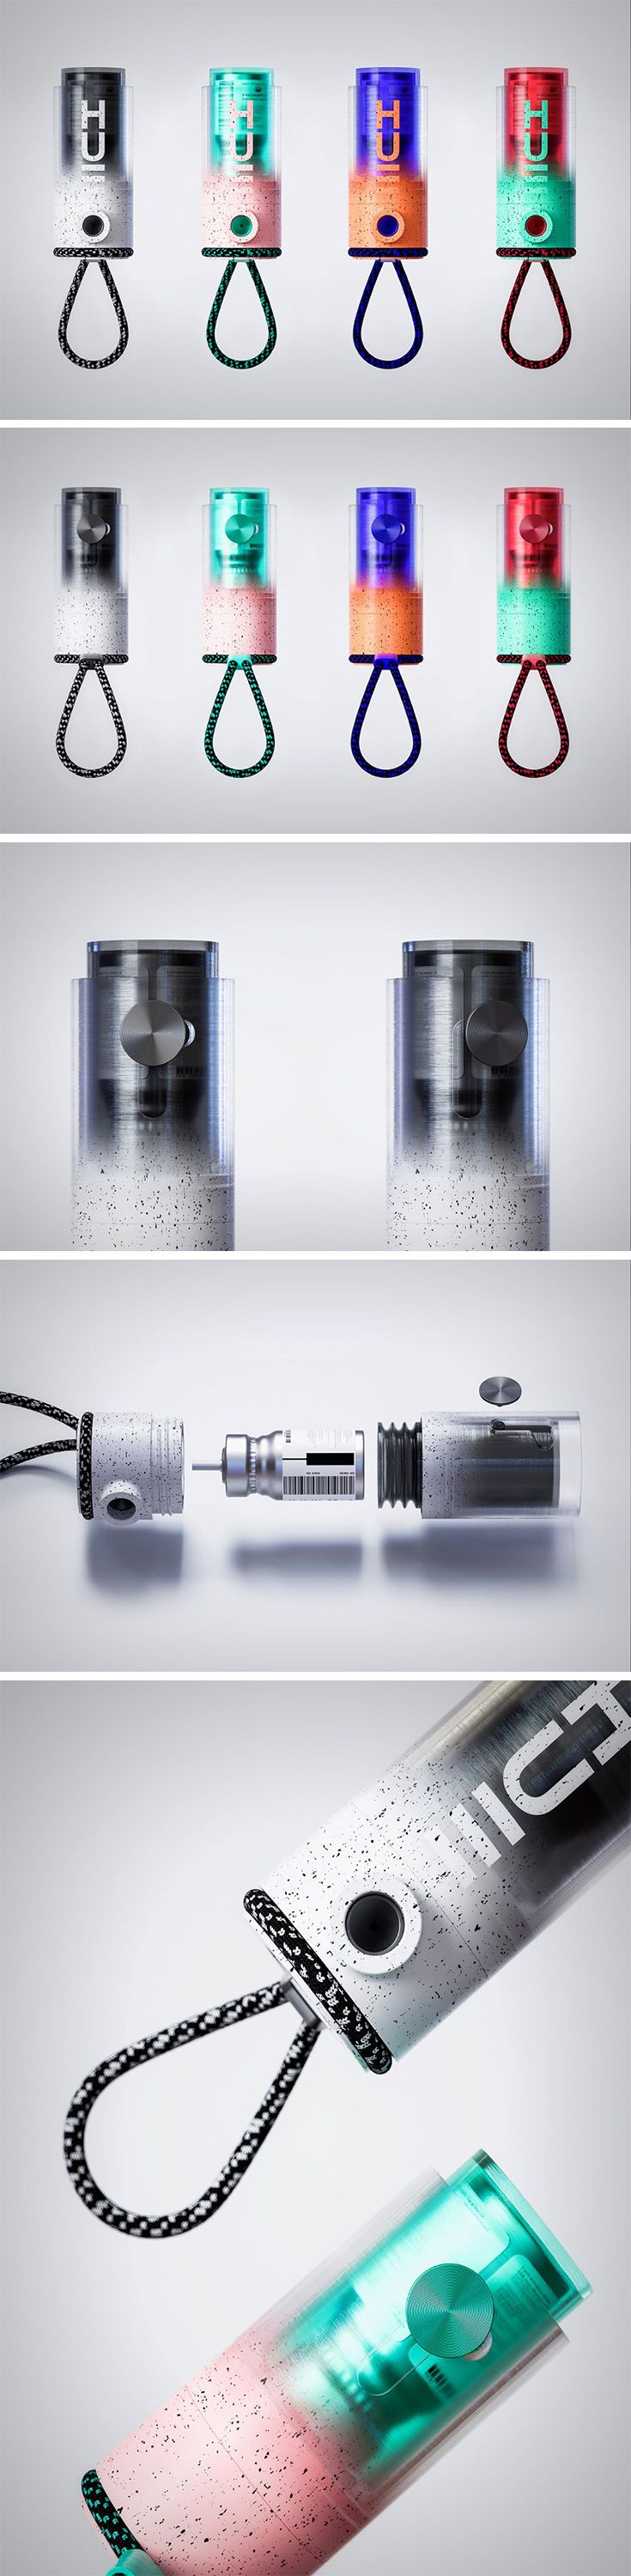 The Hue Inhaler is a step in a direction, bringing incredible CMF detailing to the otherwise mundane asthma inhaler. The Hue is completely 3D printed and comes with a dazzling set of color combinations that are bound to break the monotony of medical product design. With roughly 300 million people in this world suffering from asthma and almost 250,000 deaths per year, the Hue Inhaler's crusade to destroy stigma around inhalers may just save more than a fair share of lives.